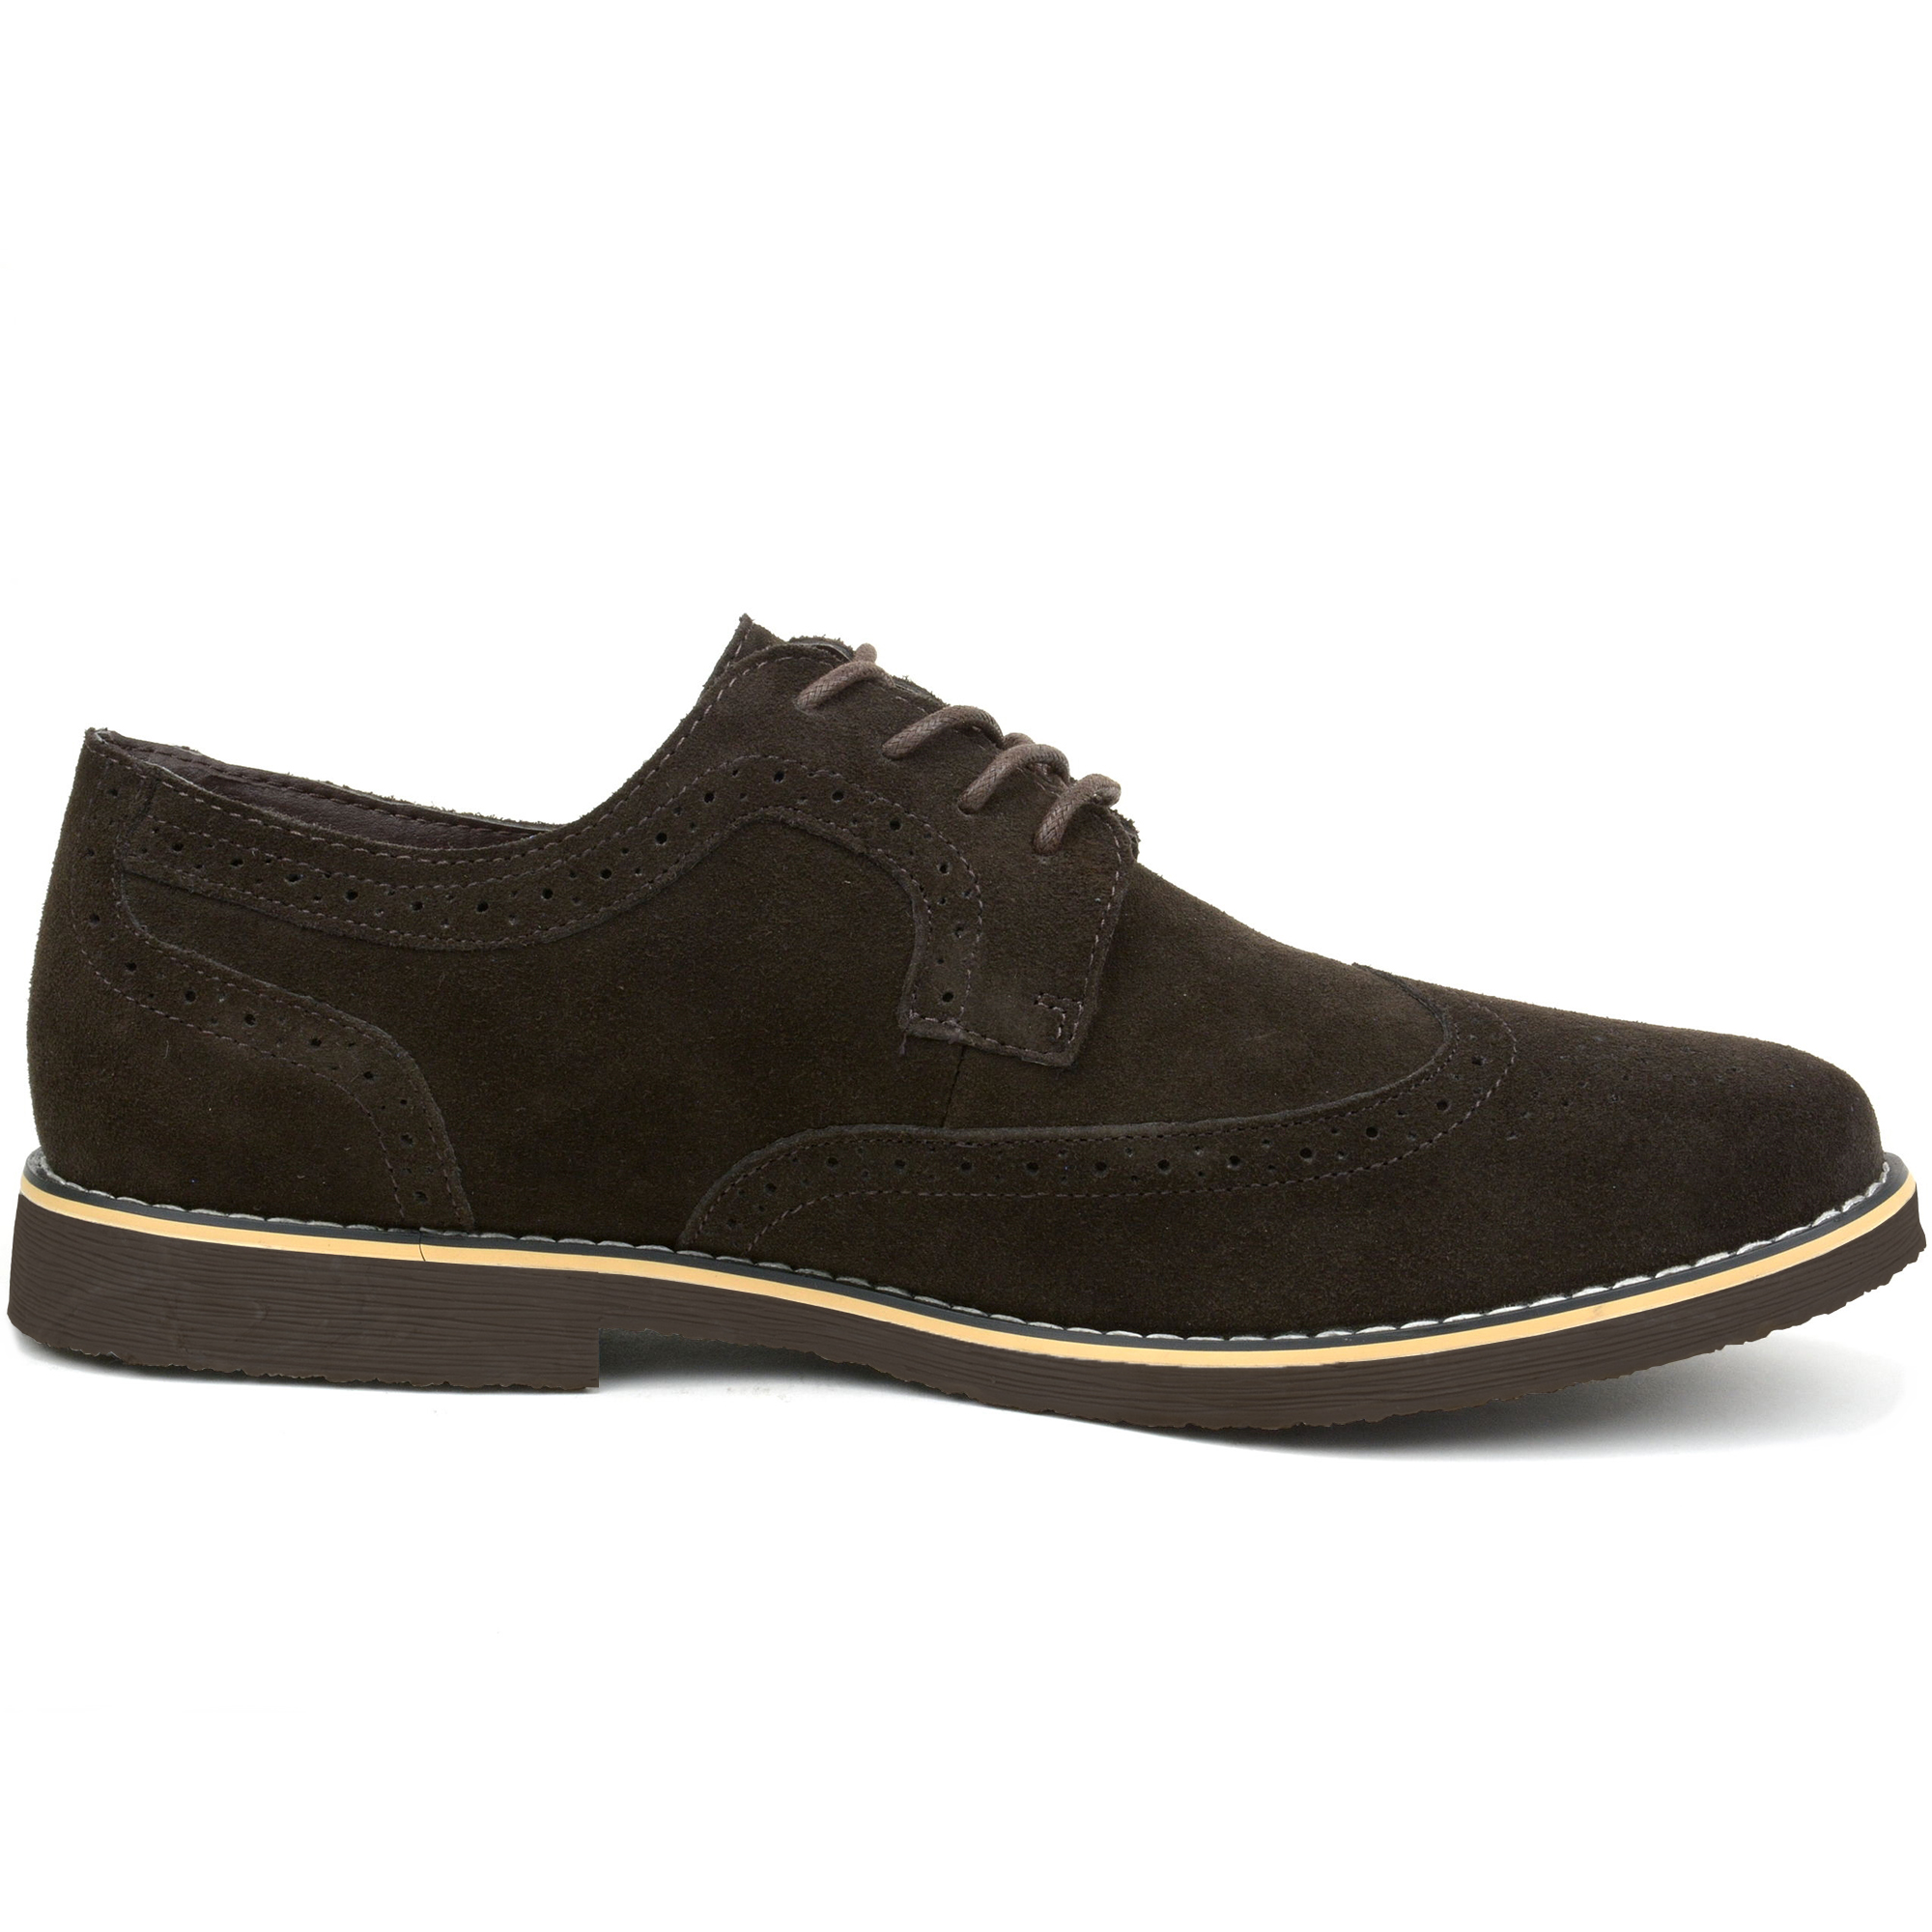 Alpine-Swiss-Beau-Mens-Dress-Shoes-Genuine-Suede-Wing-Tip-Brogue-Lace-Up-Oxfords thumbnail 36